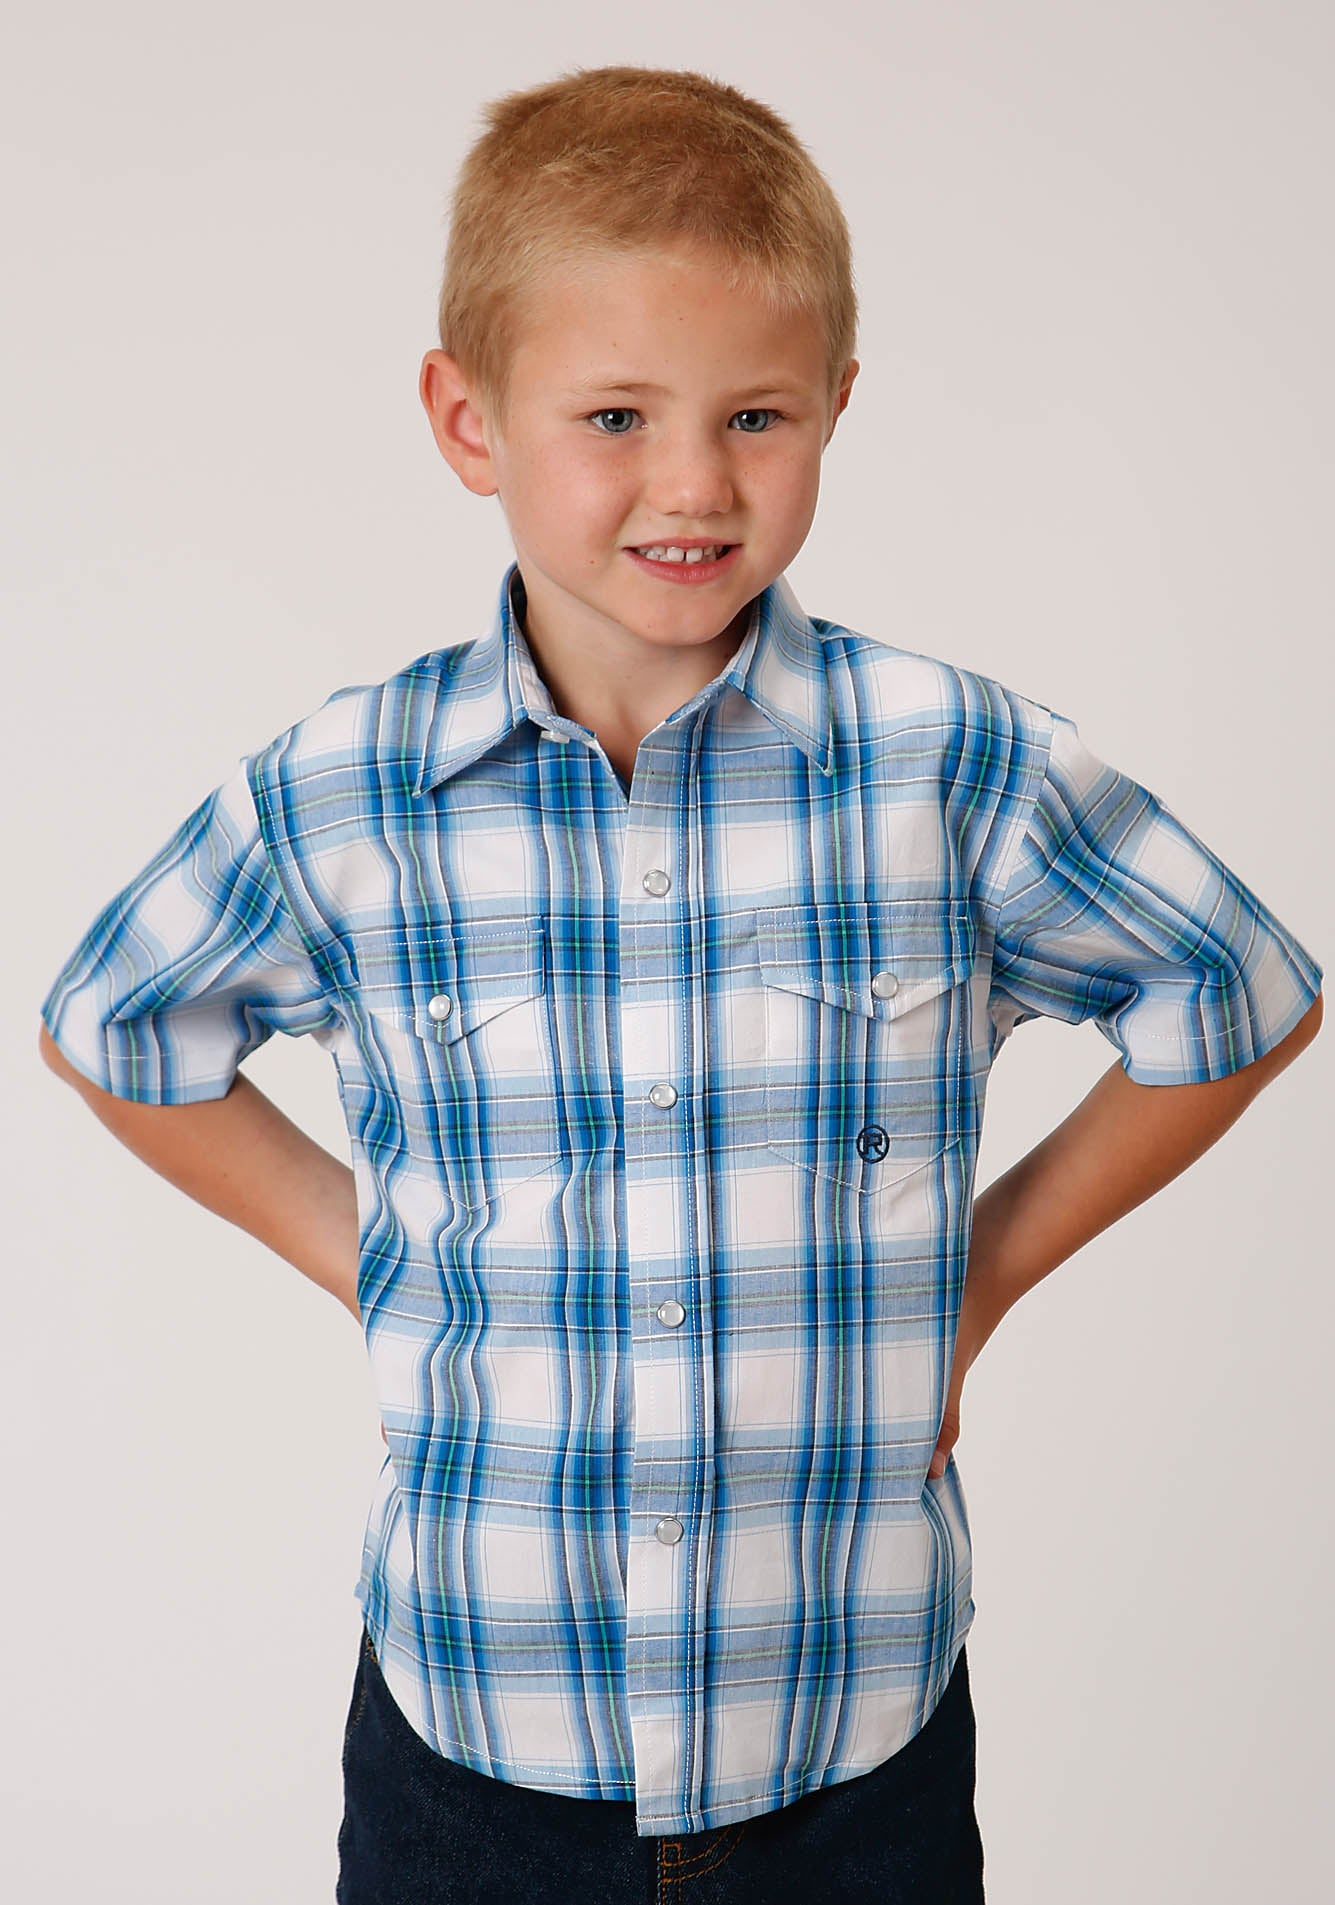 ROPER BOYS BLUE 00158 BLUE BROOK PLAID BOYS AMARILLO COLLECTION - BLUE RIDGE SHORT SLEEVE